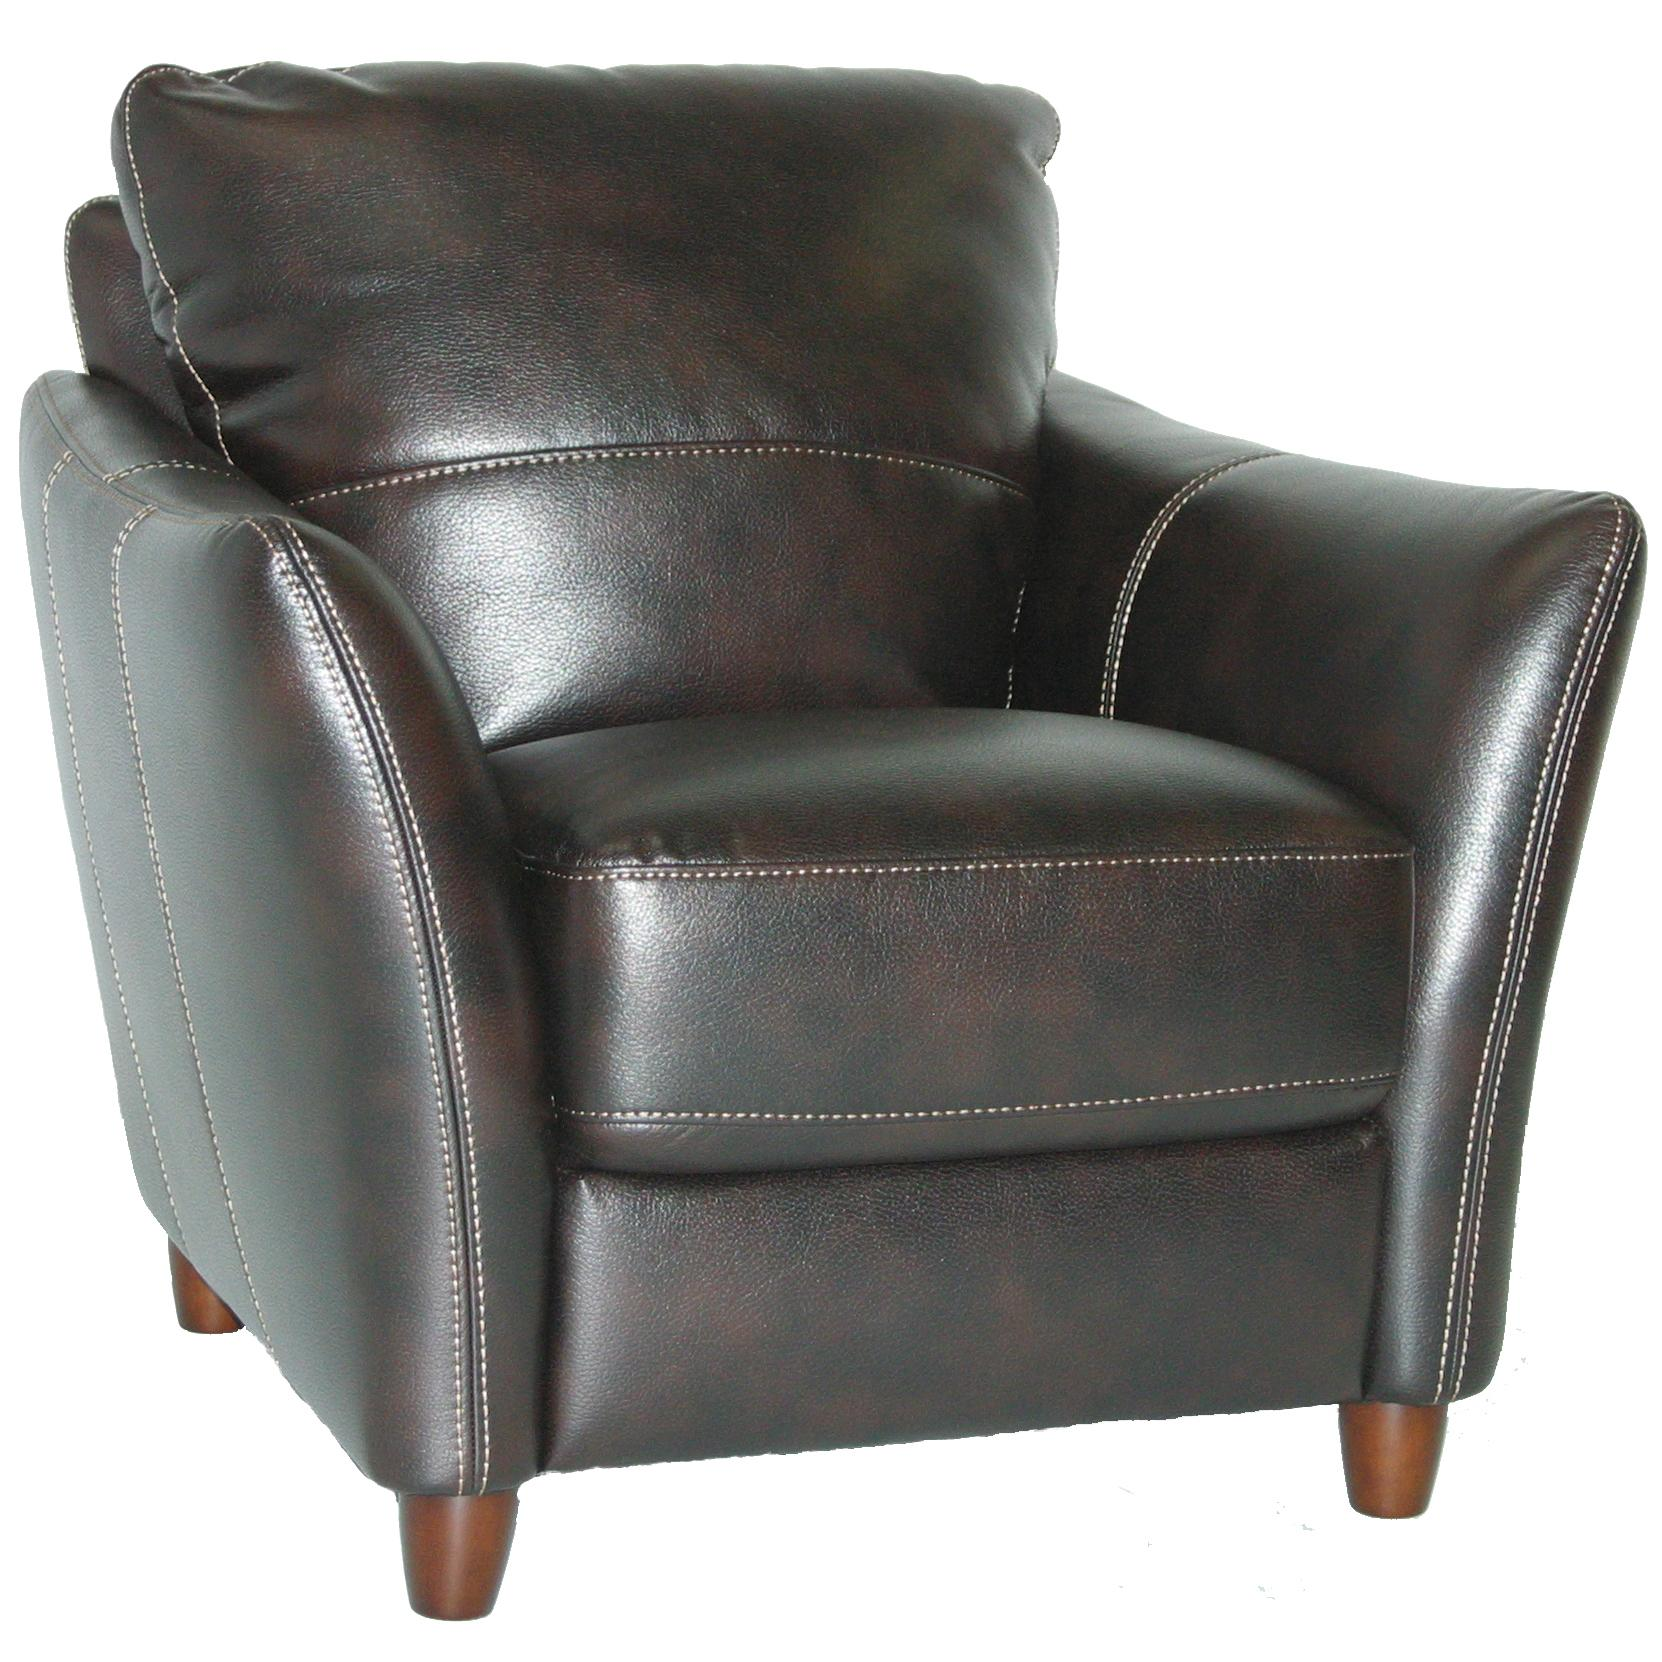 3356 Chair by Violino at Furniture Superstore - Rochester, MN